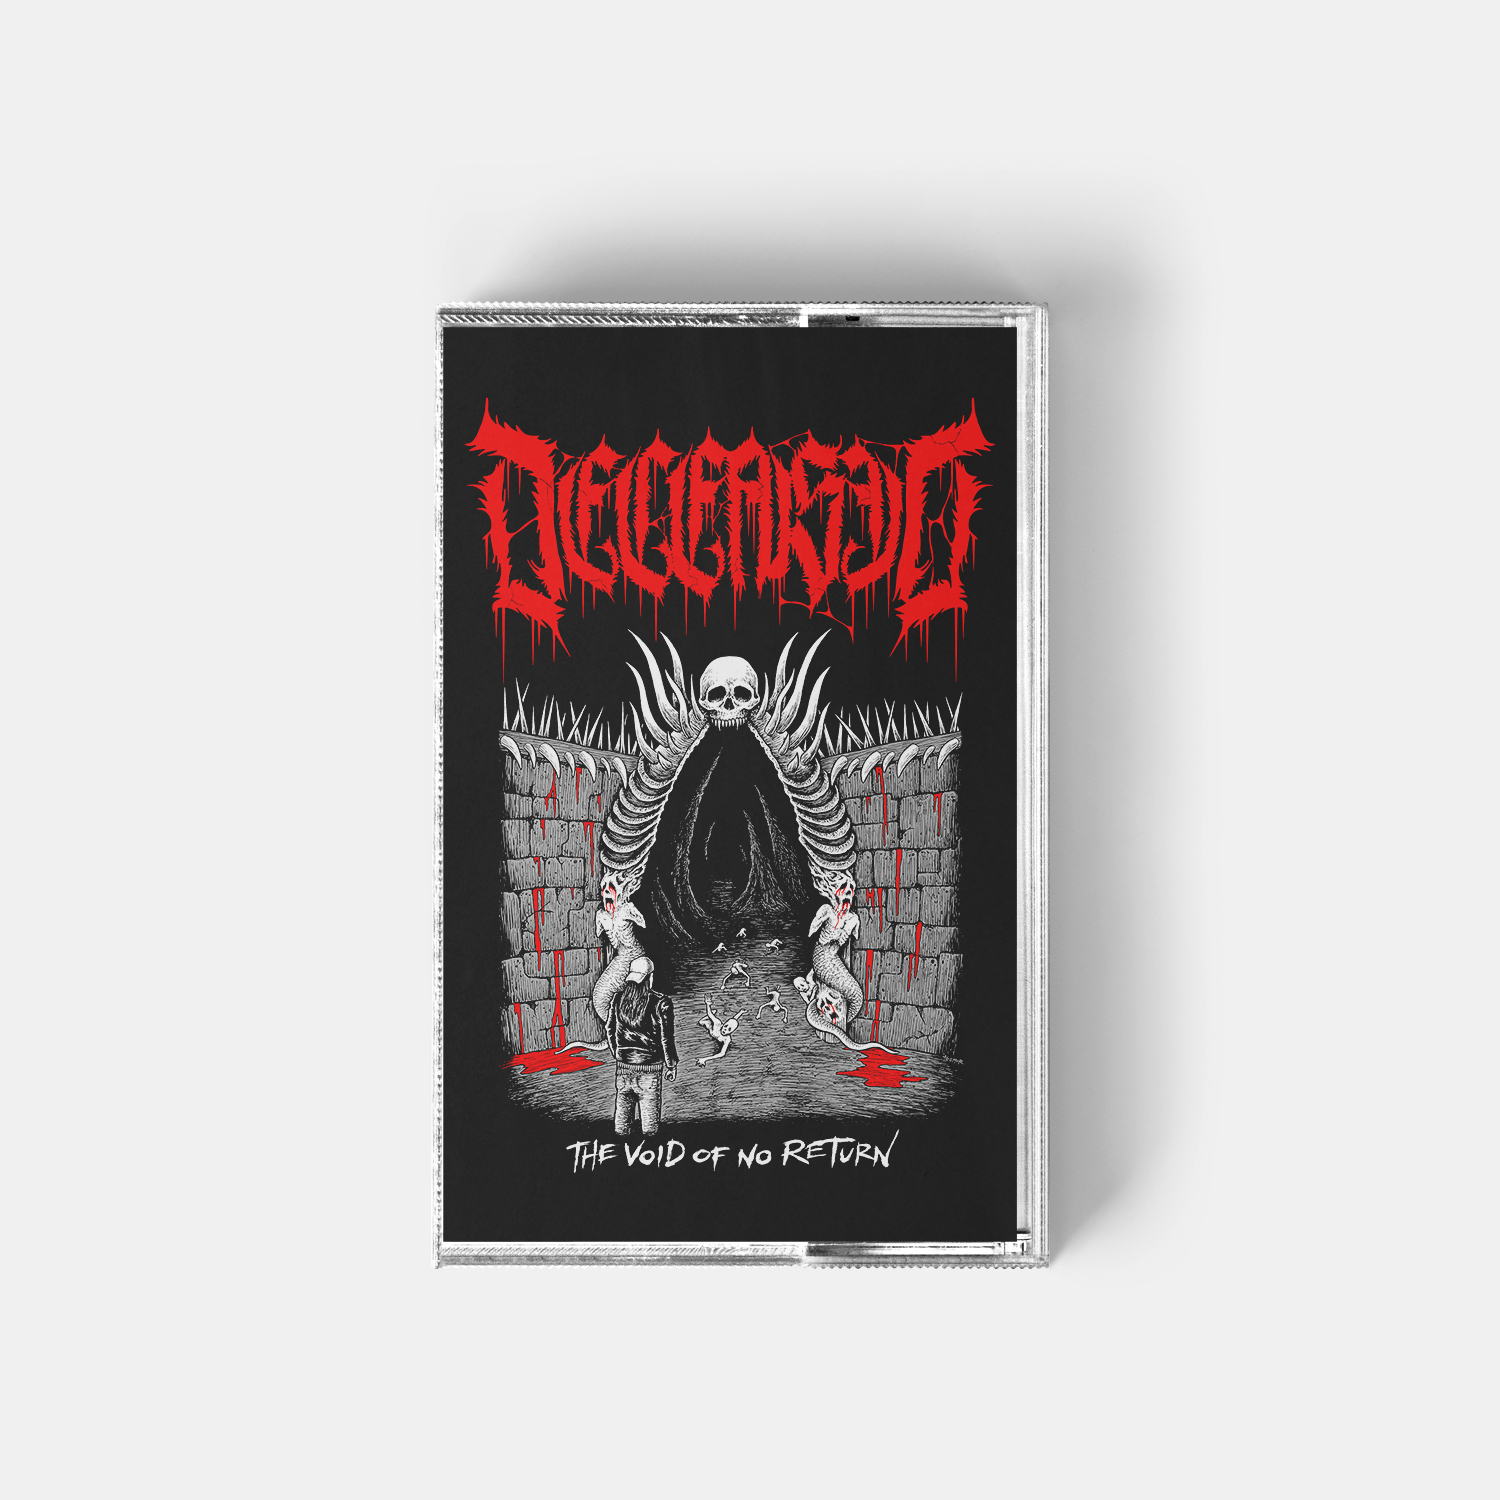 -sold out- Deceased - The void of no return CS